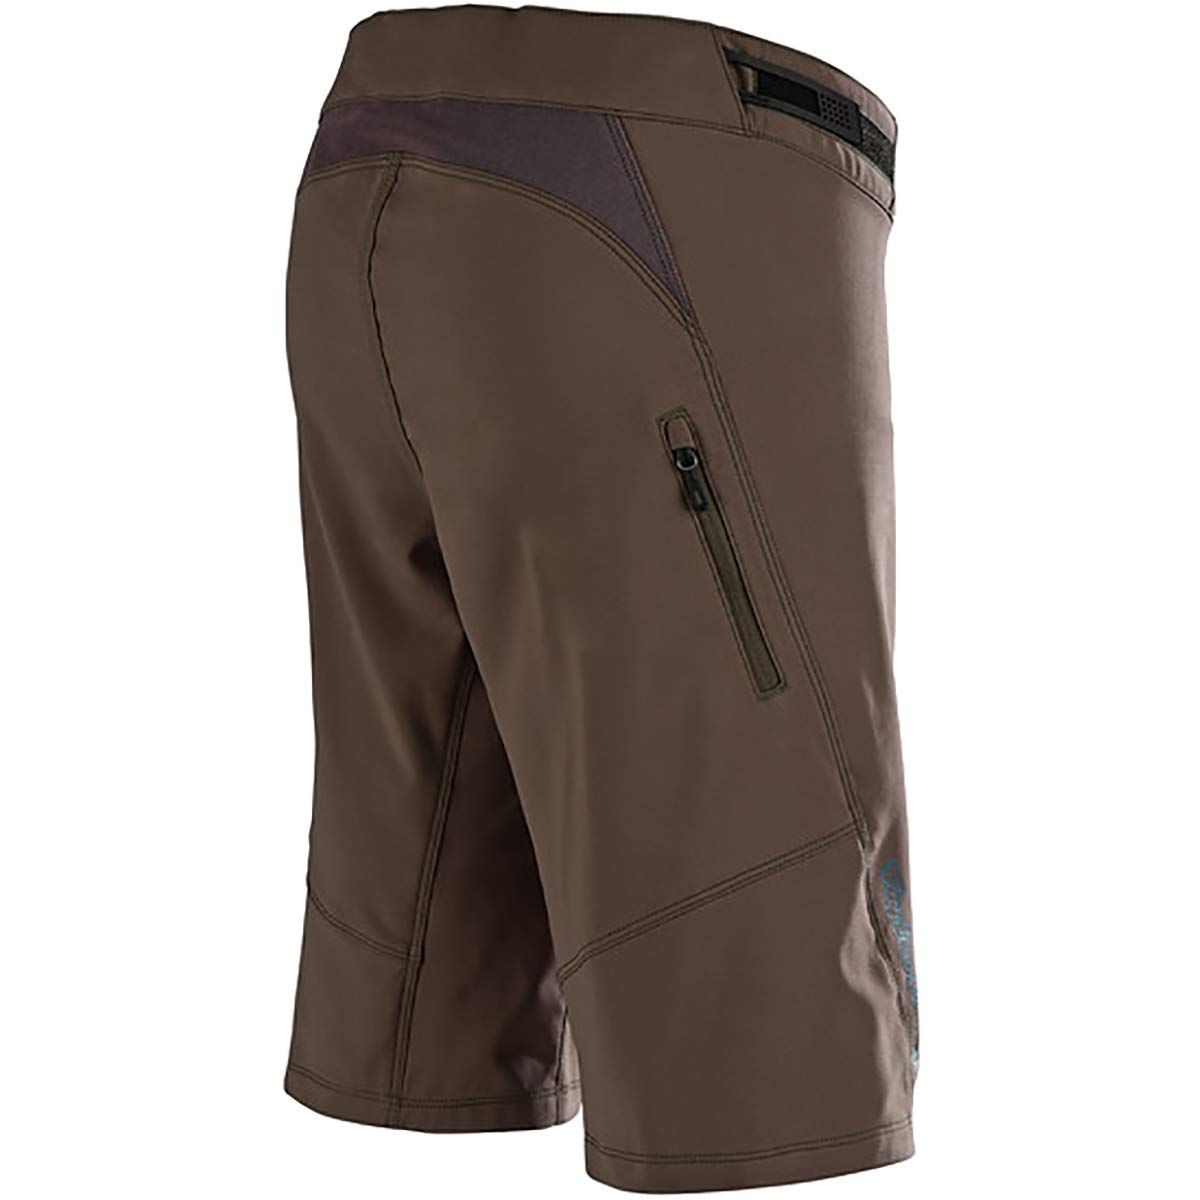 Troy Lee Designs Skyline Short - Women's Solid Moka/Corsair, S by Troy Lee Designs (Image #2)